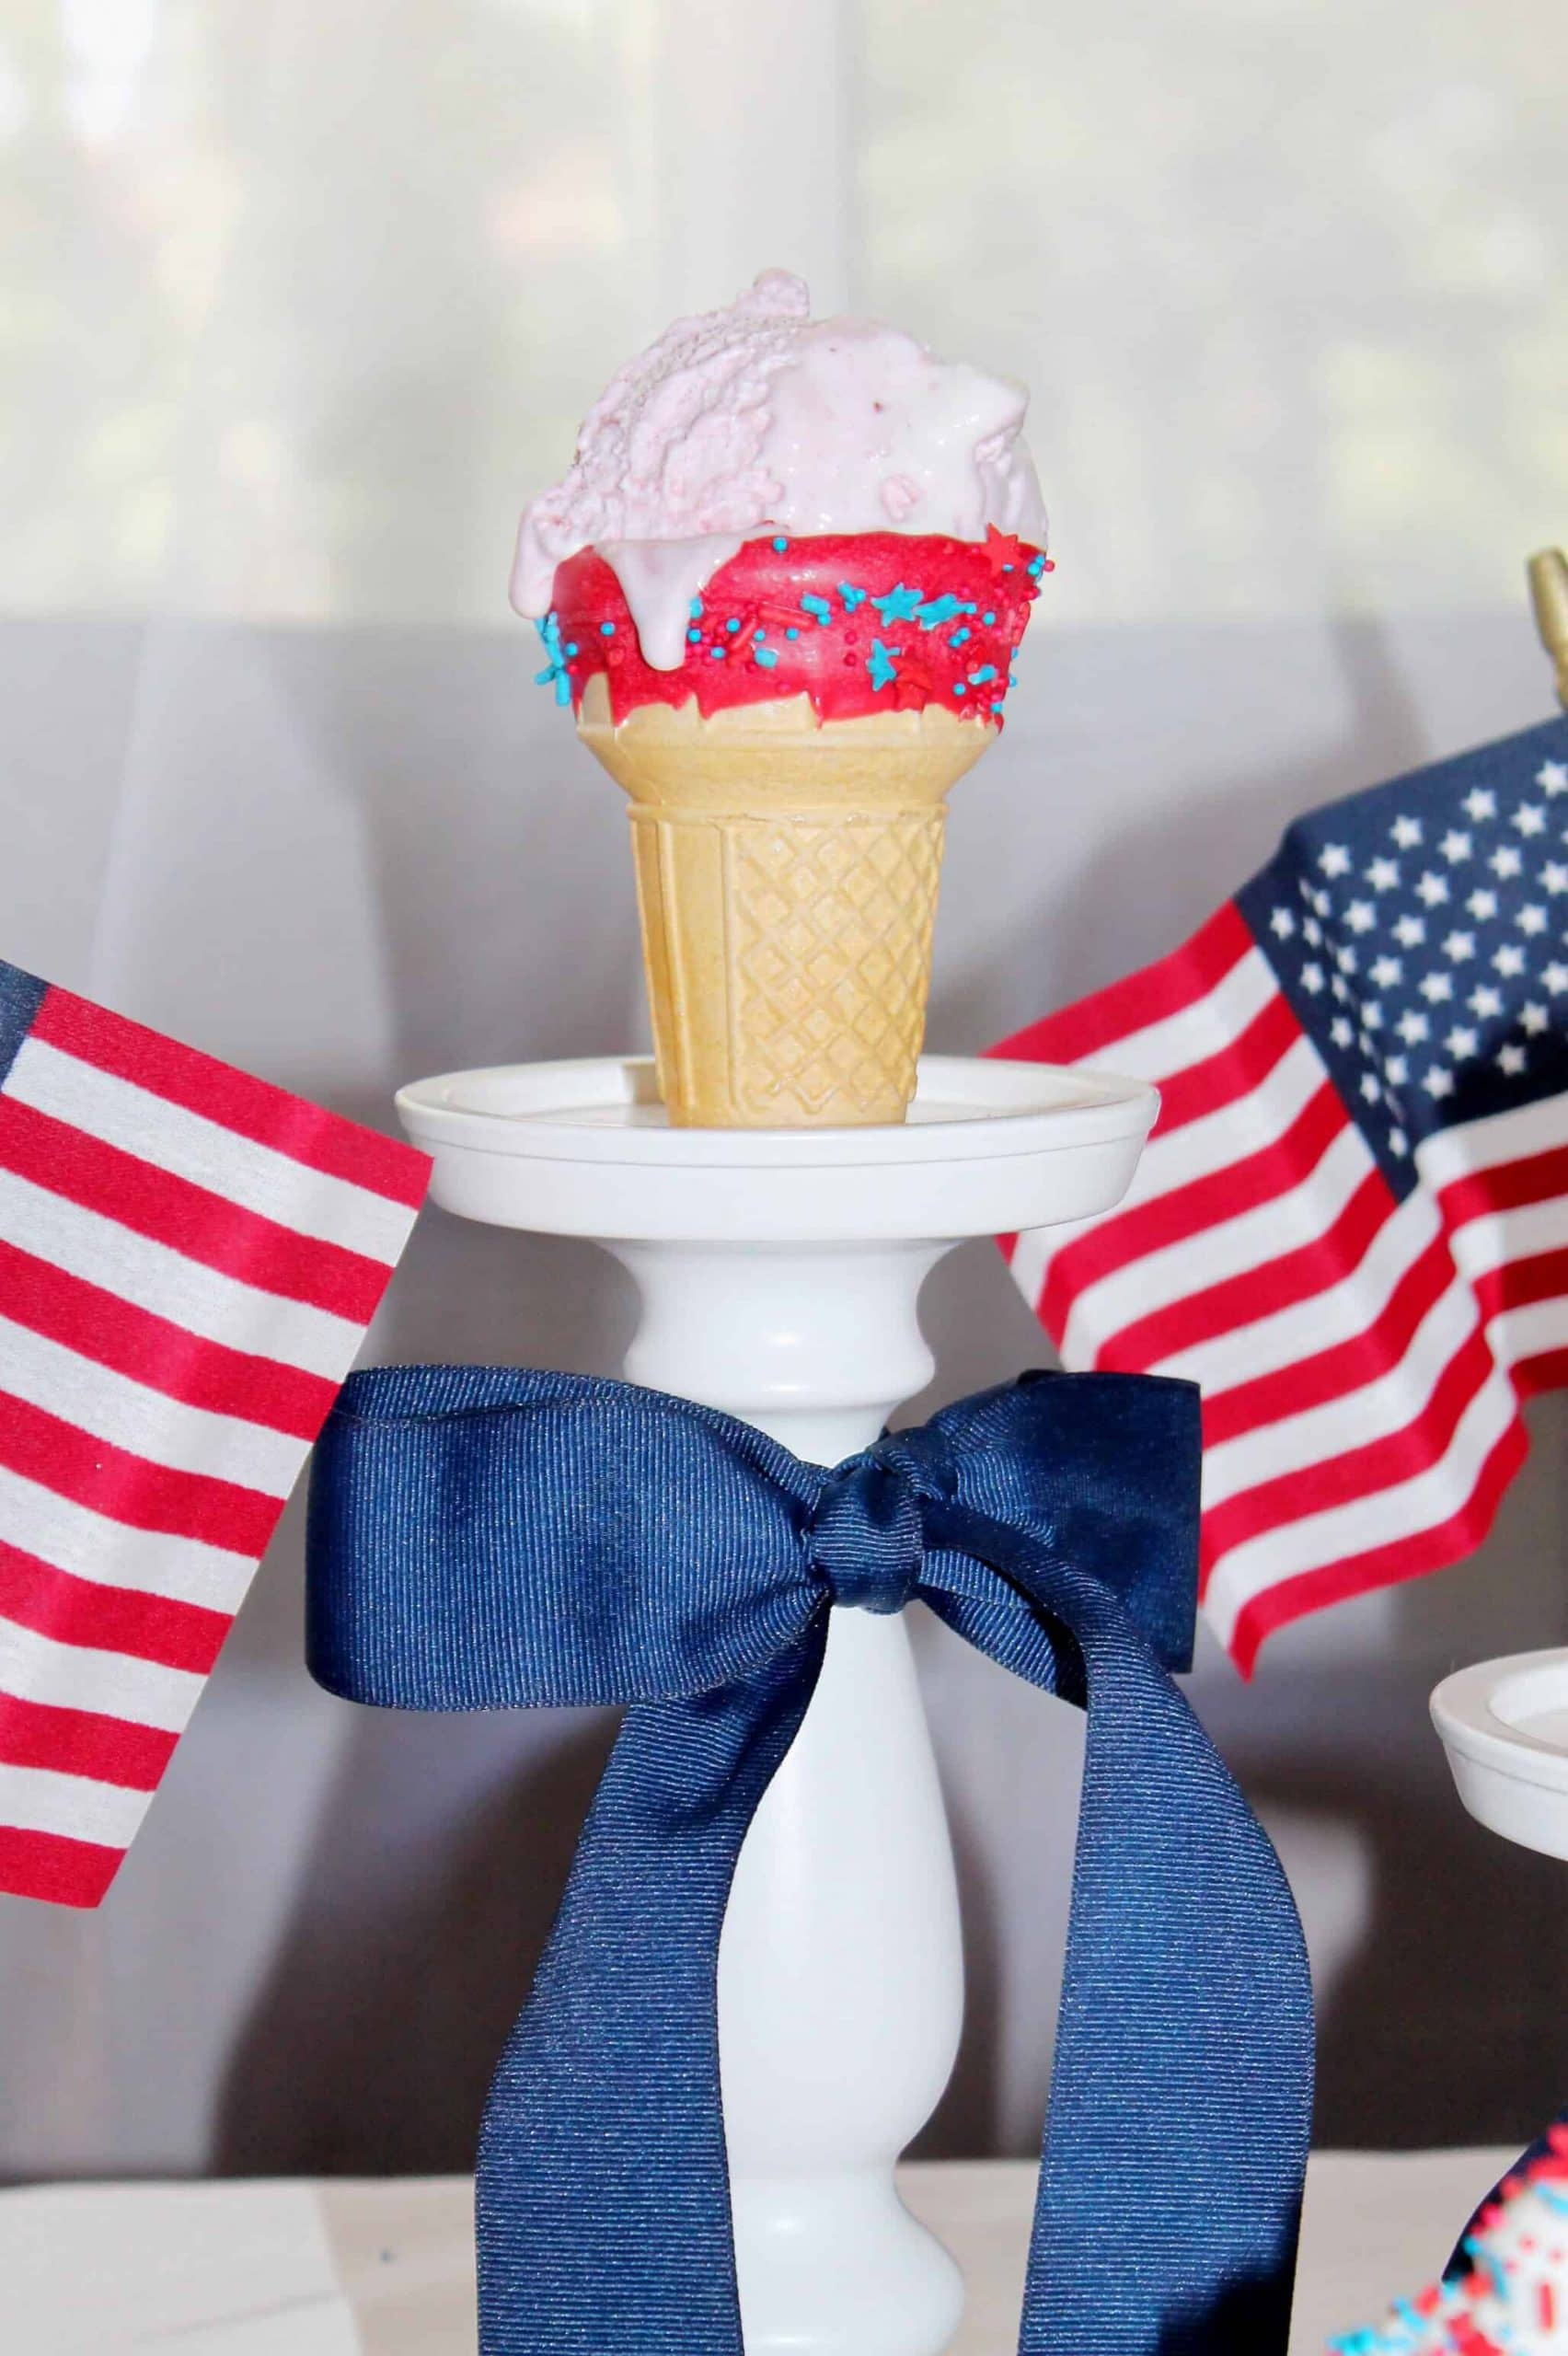 4th of July Ice Cream Cones 1 scaled - 4th of July Ice Cream Cones